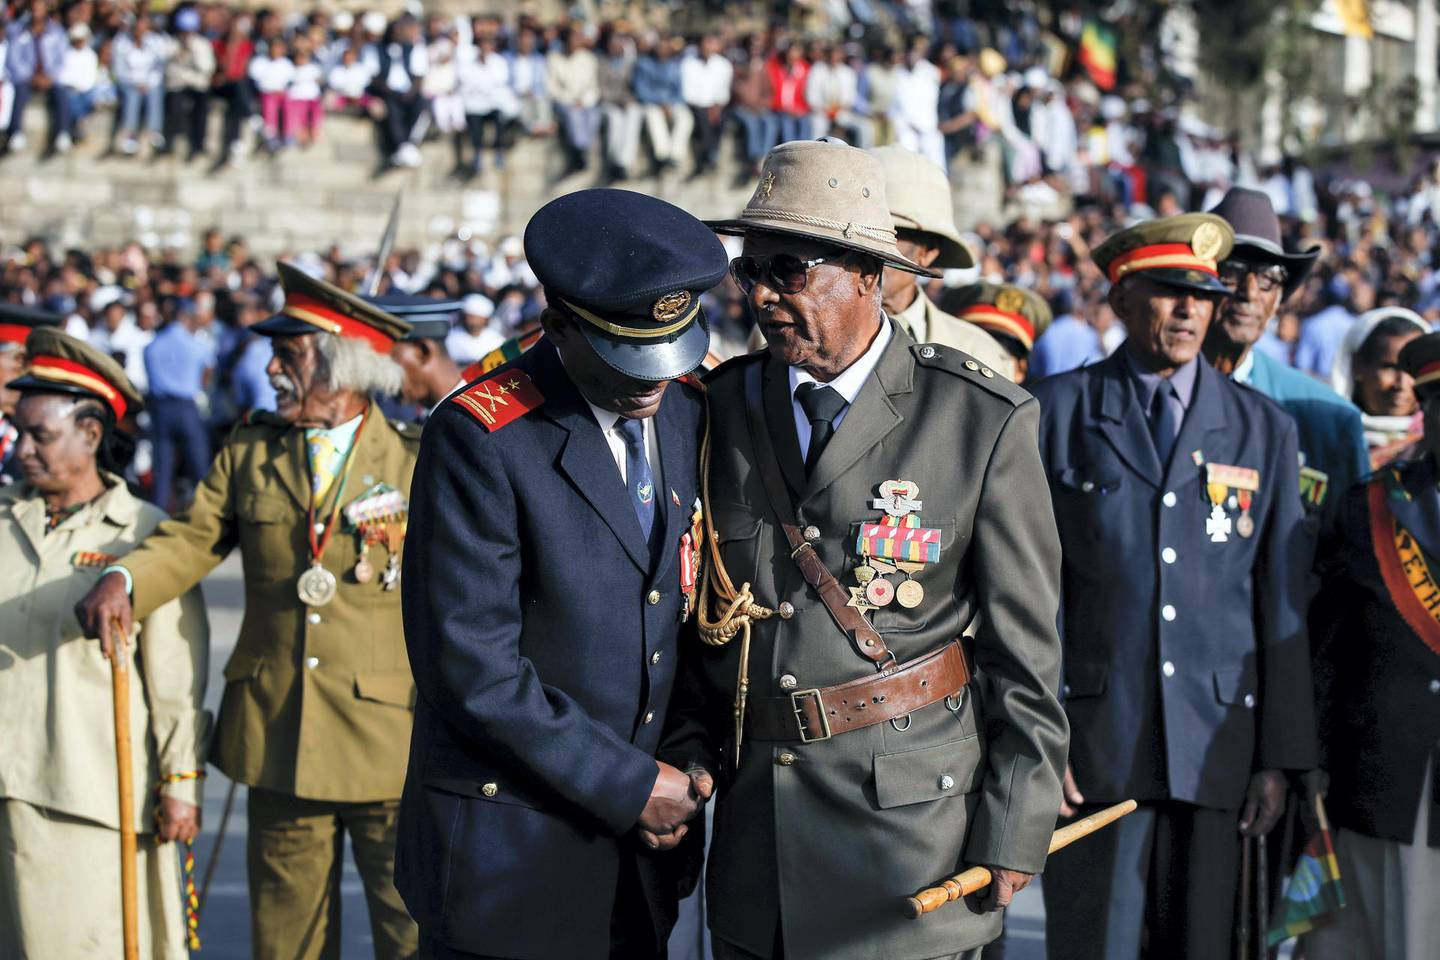 ADDIS ABABA, ETHIOPIA - MARCH 02: Ethiopians attend a parade to mark the 124th anniversary of Battle of Adwa at King II Menelik Square in Addis Ababa, Ethiopia on March 02, 2020. Battle of Adwa is the Ethiopia's victory over Italian forces at the Battle of Adwa, on March 1, 1896. (Photo by Minasse Wondimu Hailu/Anadolu Agency via Getty Images)